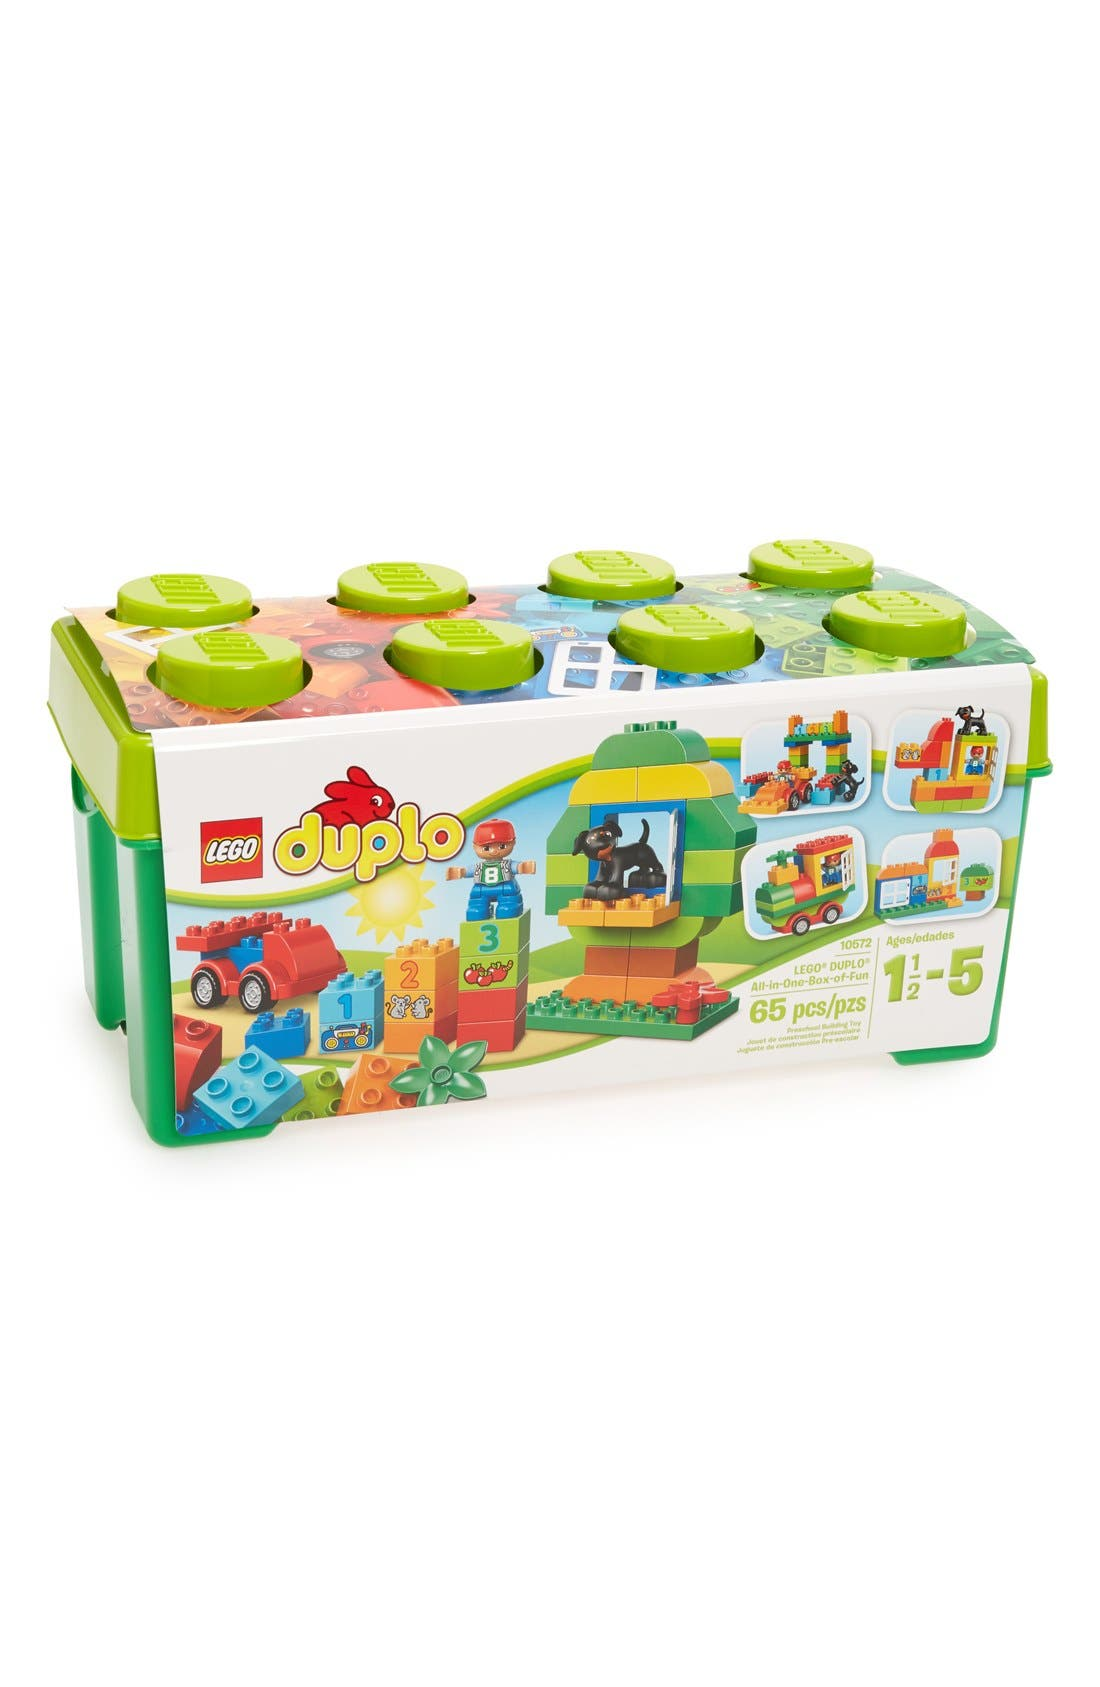 LEGO® DUPLO® All-in-One Box of Fun - 10572